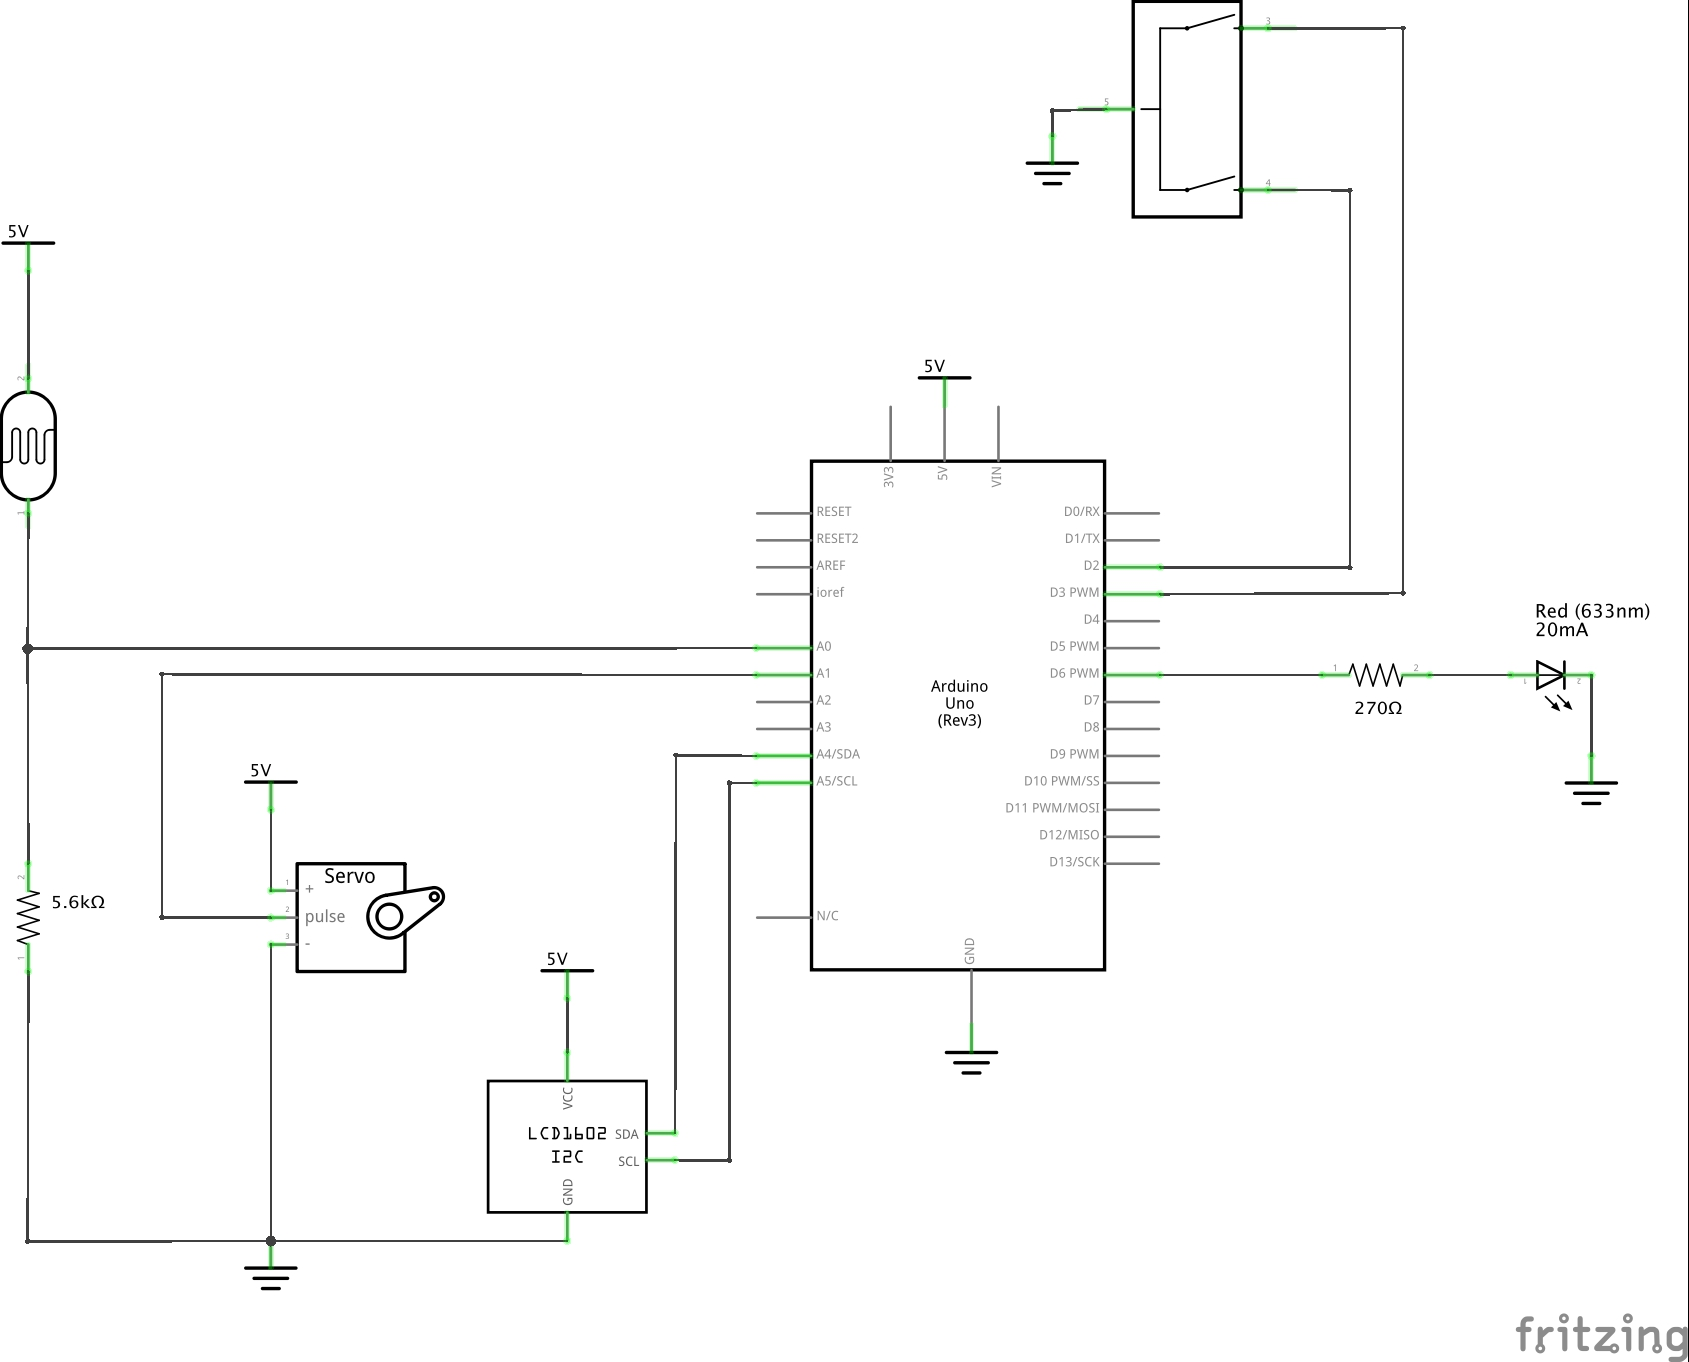 Schematic of the circuit wiring